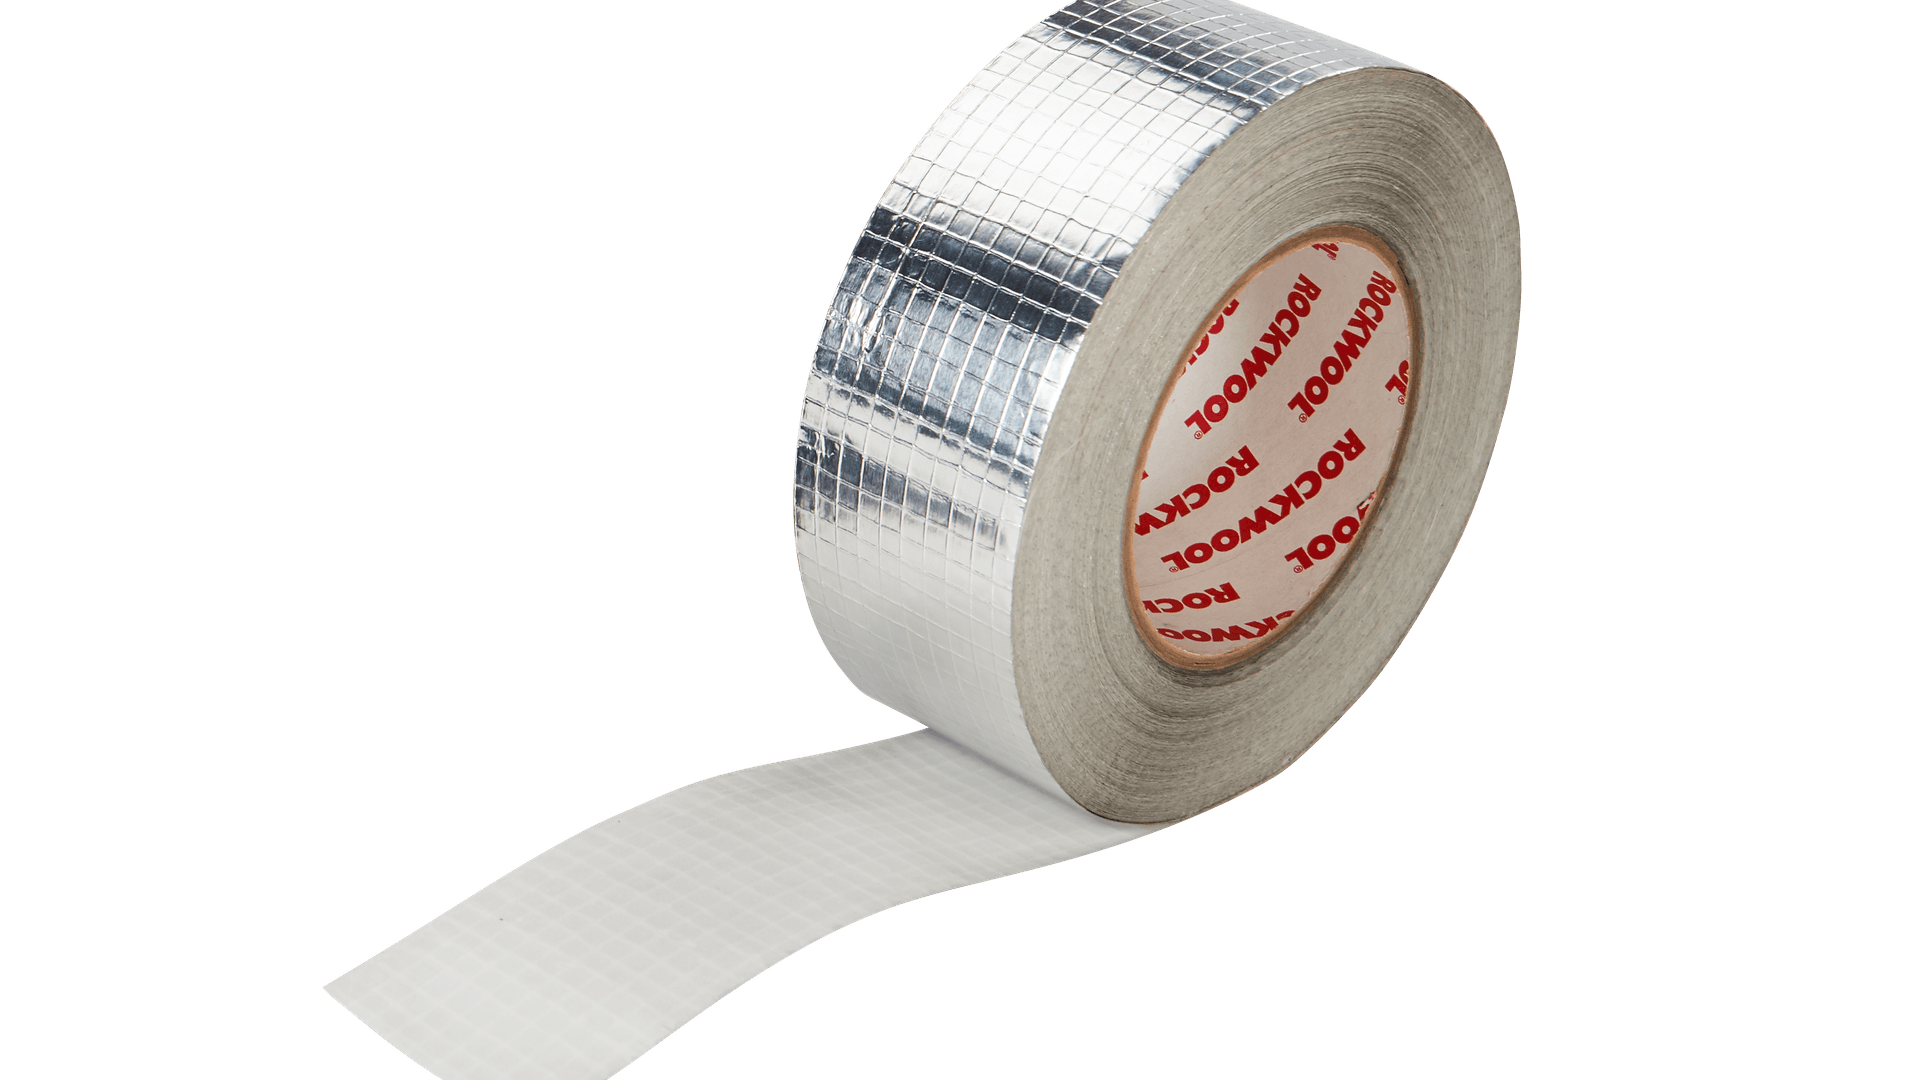 TECLIT AT, aluminium, self-adhesive tape, HVACR, internal cold insulation, anti-condensation, pipelines, refrigeration, air conditioning, TECLIT System components